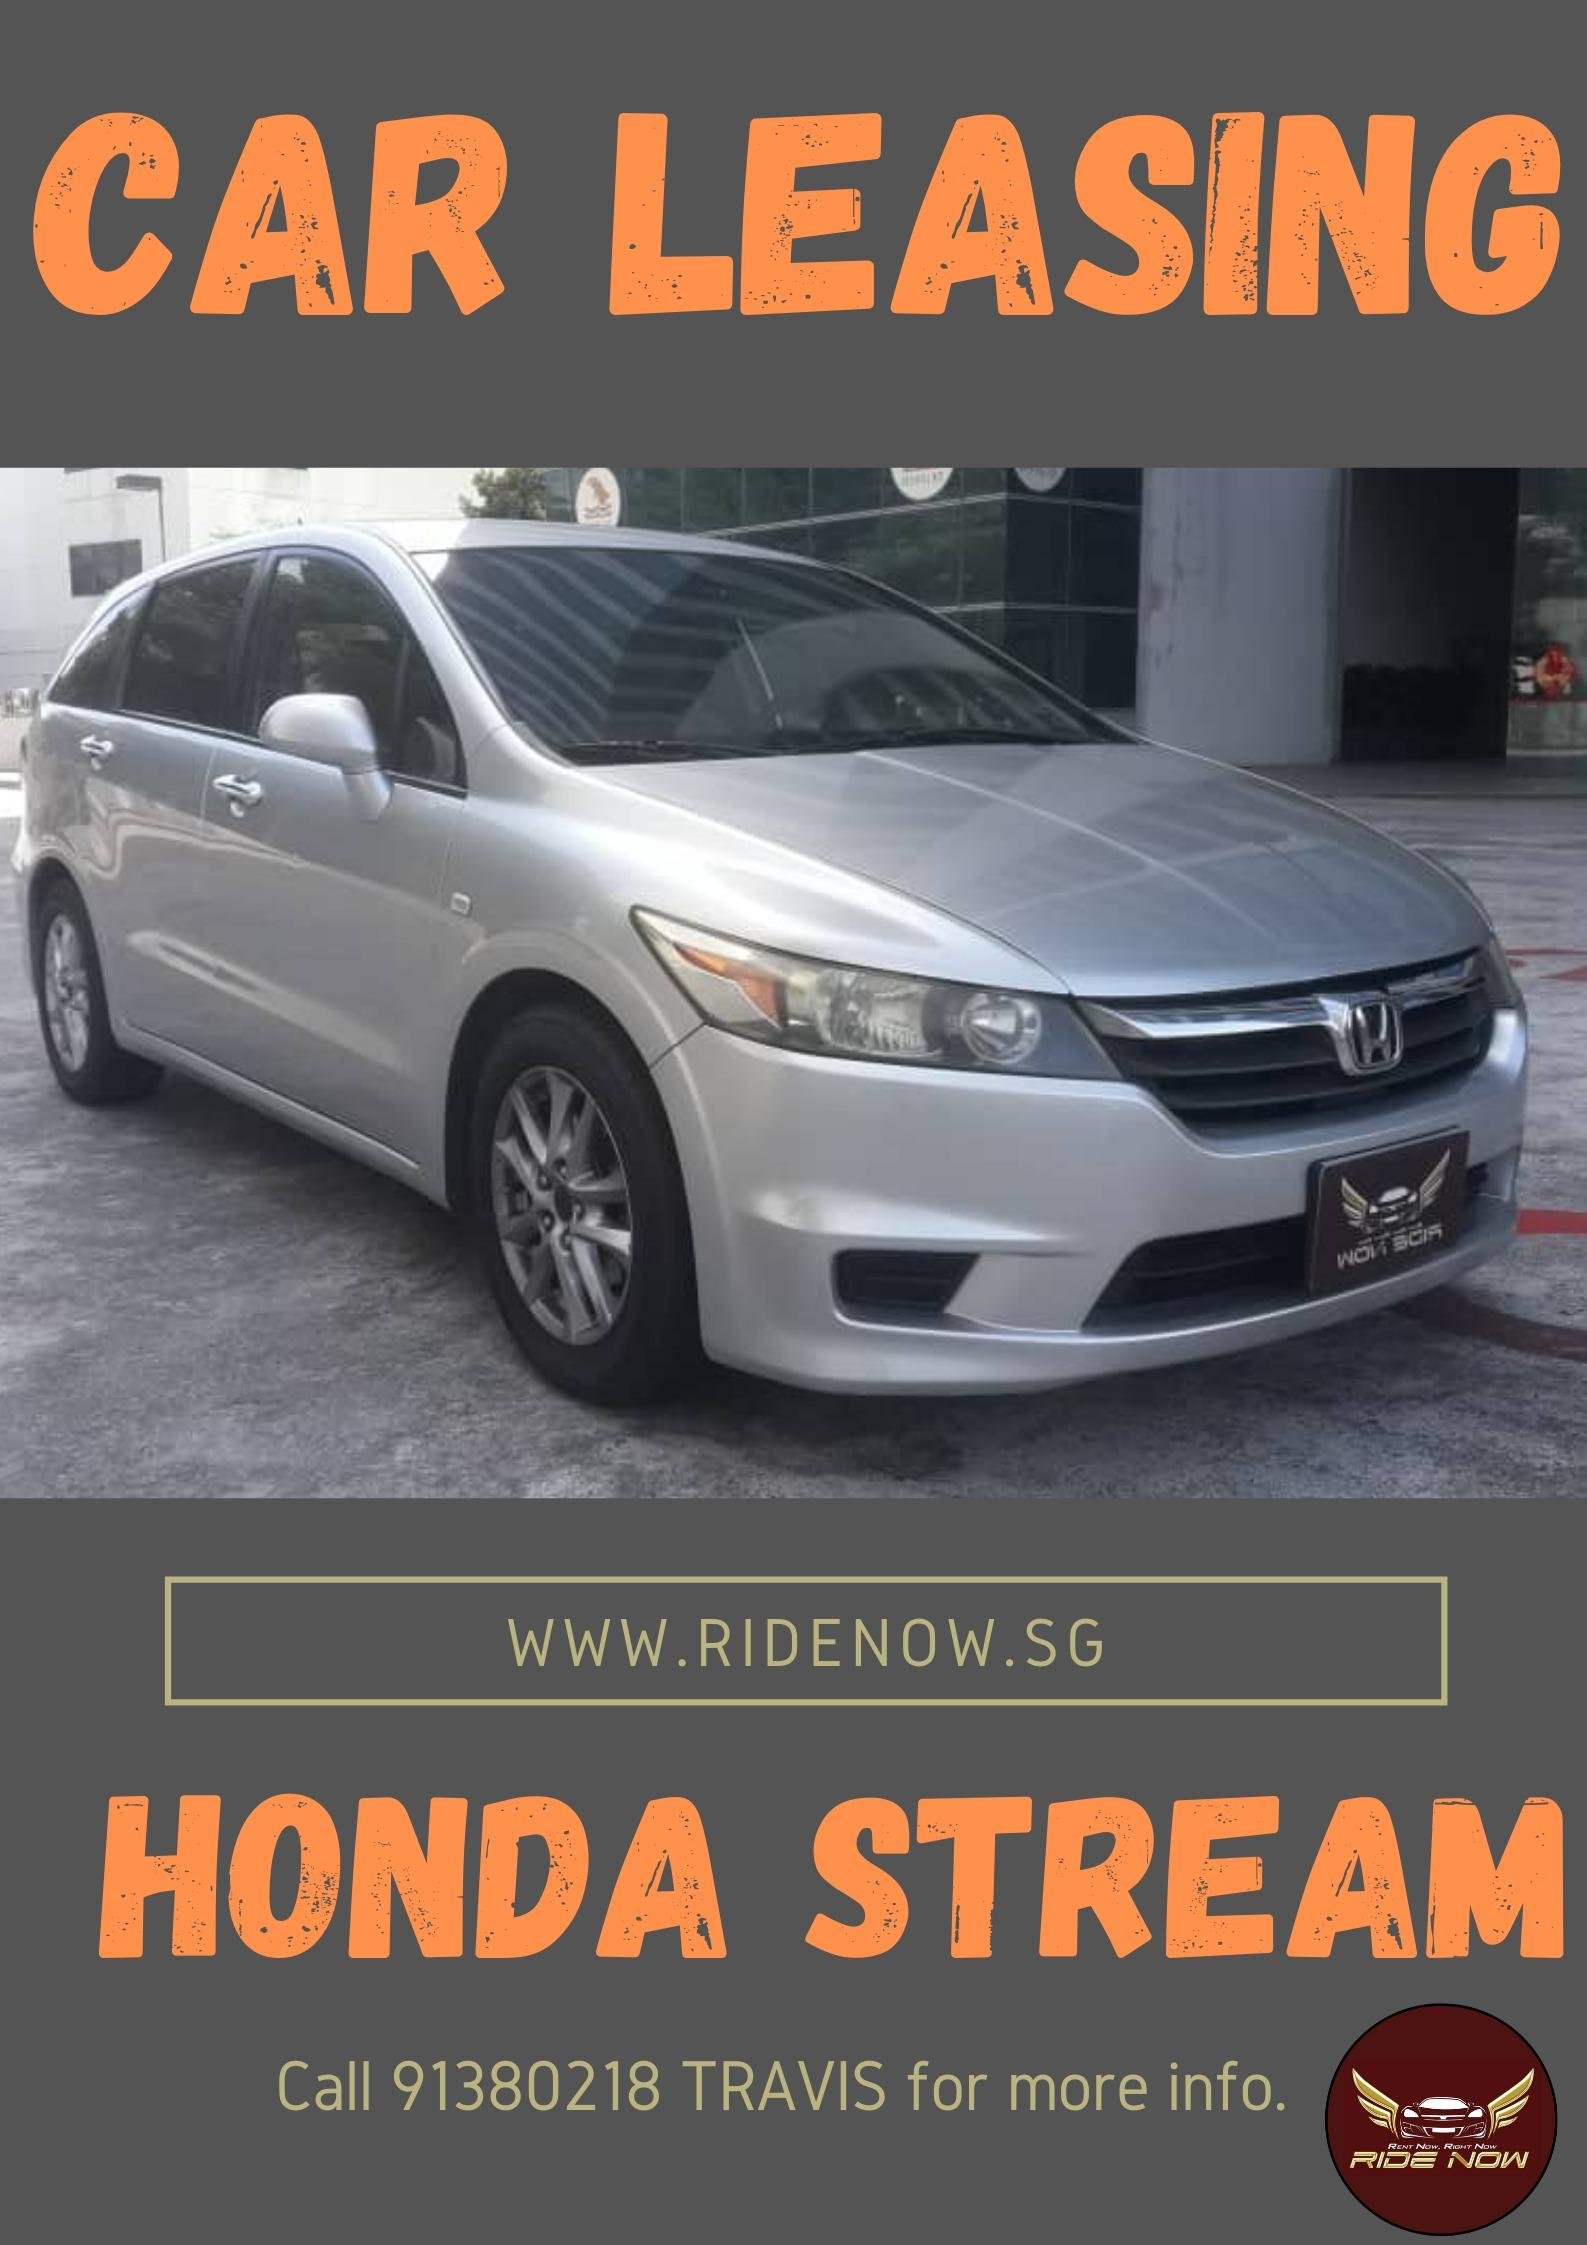 Honda Stream 1.8A Reliable MPV suitable for Malaysia Usage and Long Road Trips!